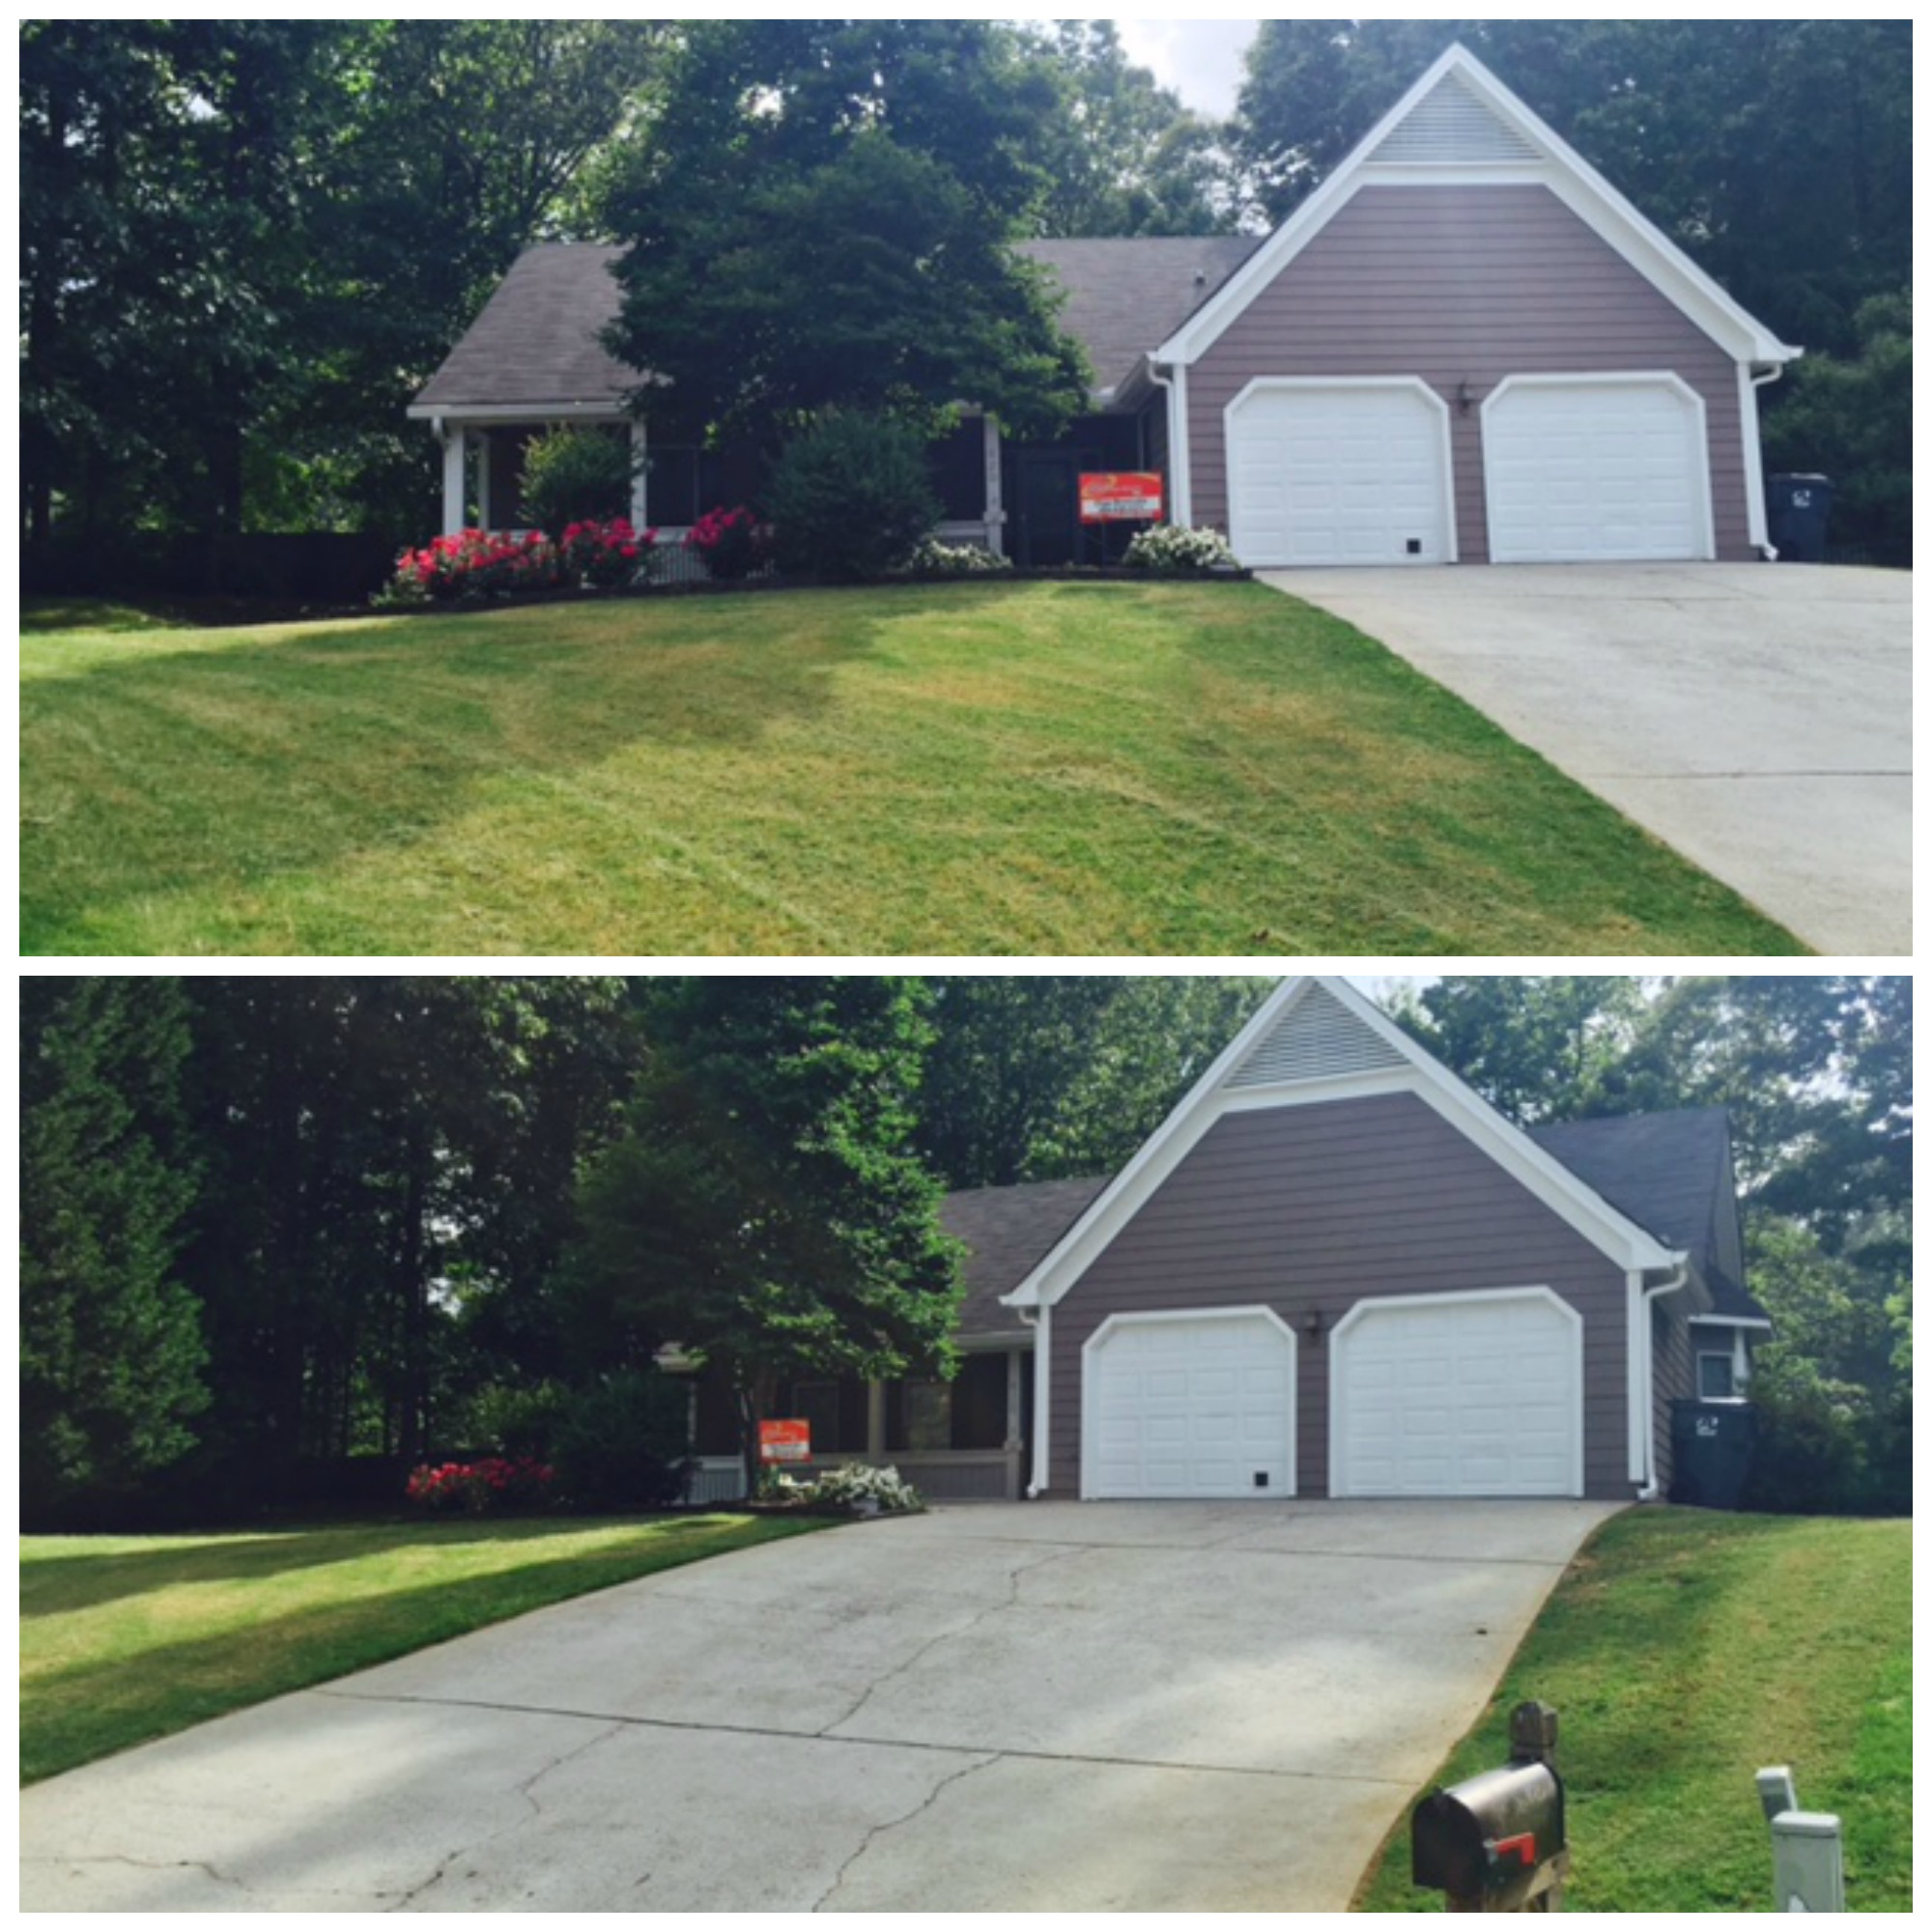 Yard mowing company in Lawrenceville, GA, 30044